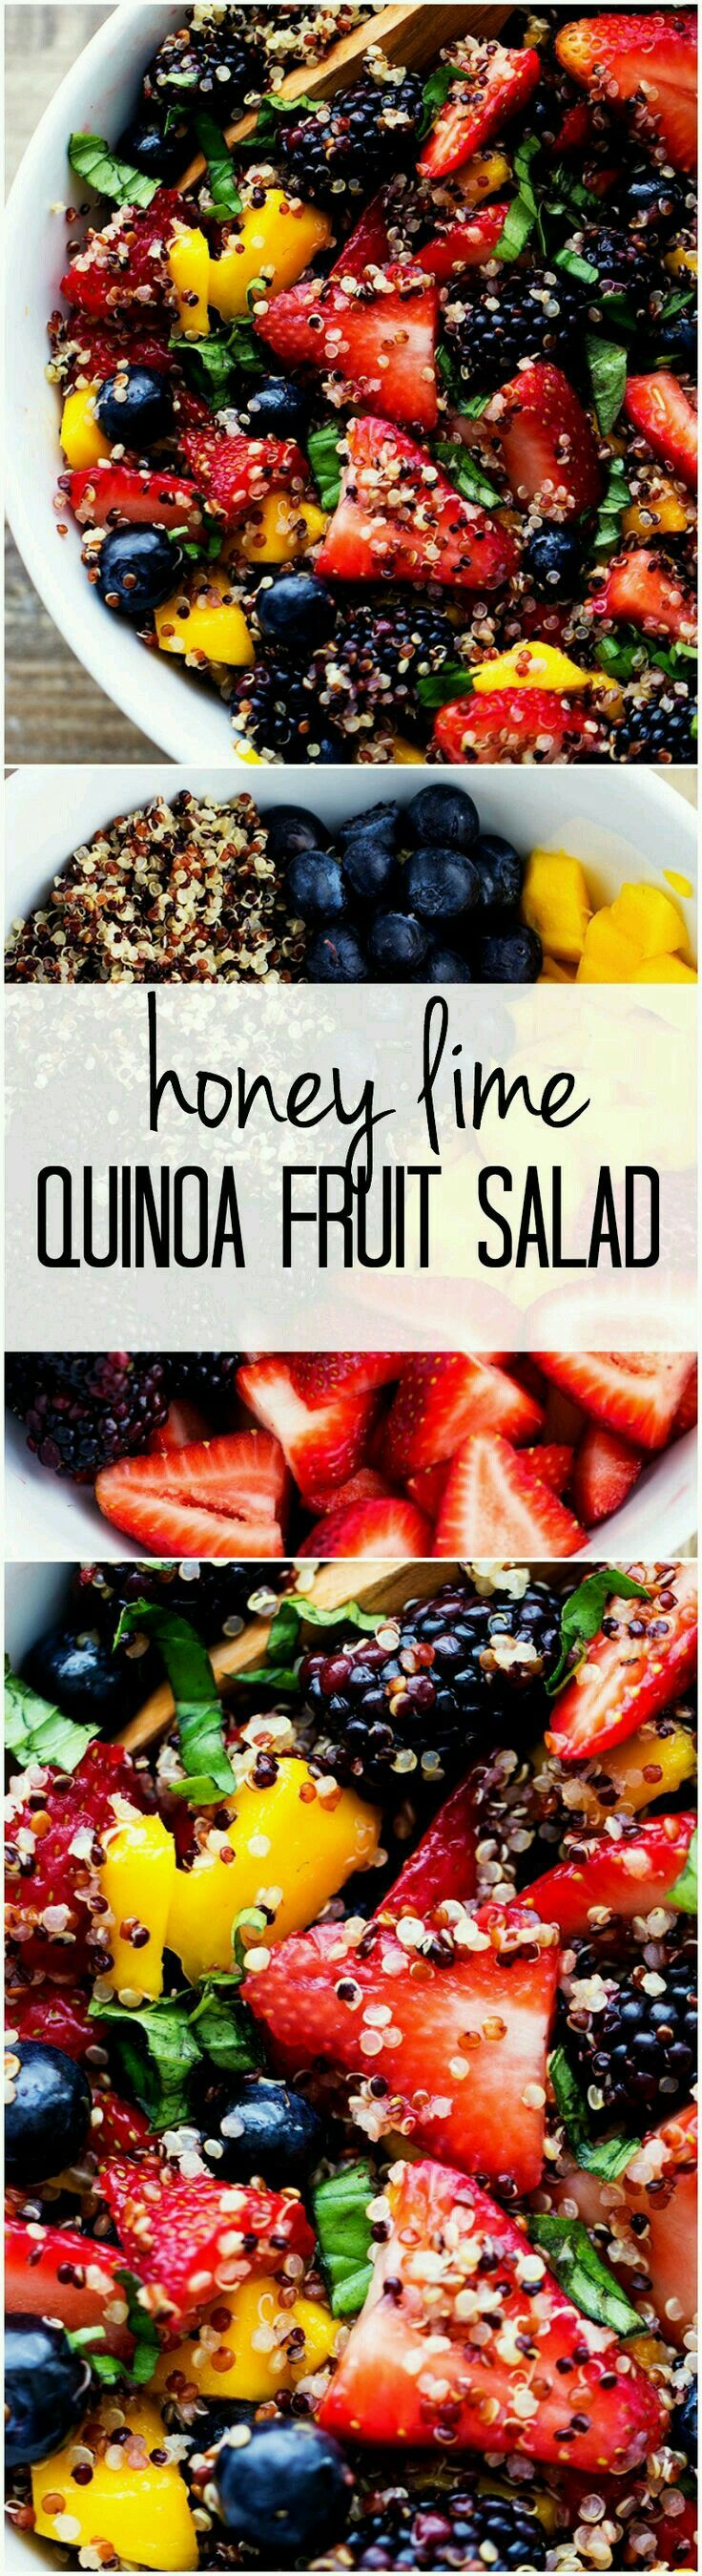 Light, Refreshing, Honey Lime Quinoa Fruit Salad - Produce 1-1/2 C. Basil 1 C. Blackberries 1 C. Blueberries 1 Mango 1-1/2 C. Strawberries Condiments 1/4 C. Honey 2 Tbsp. Lime Juice Pasta & Grains 1 C. Quinoa (tri-colored) therecipecritic.com